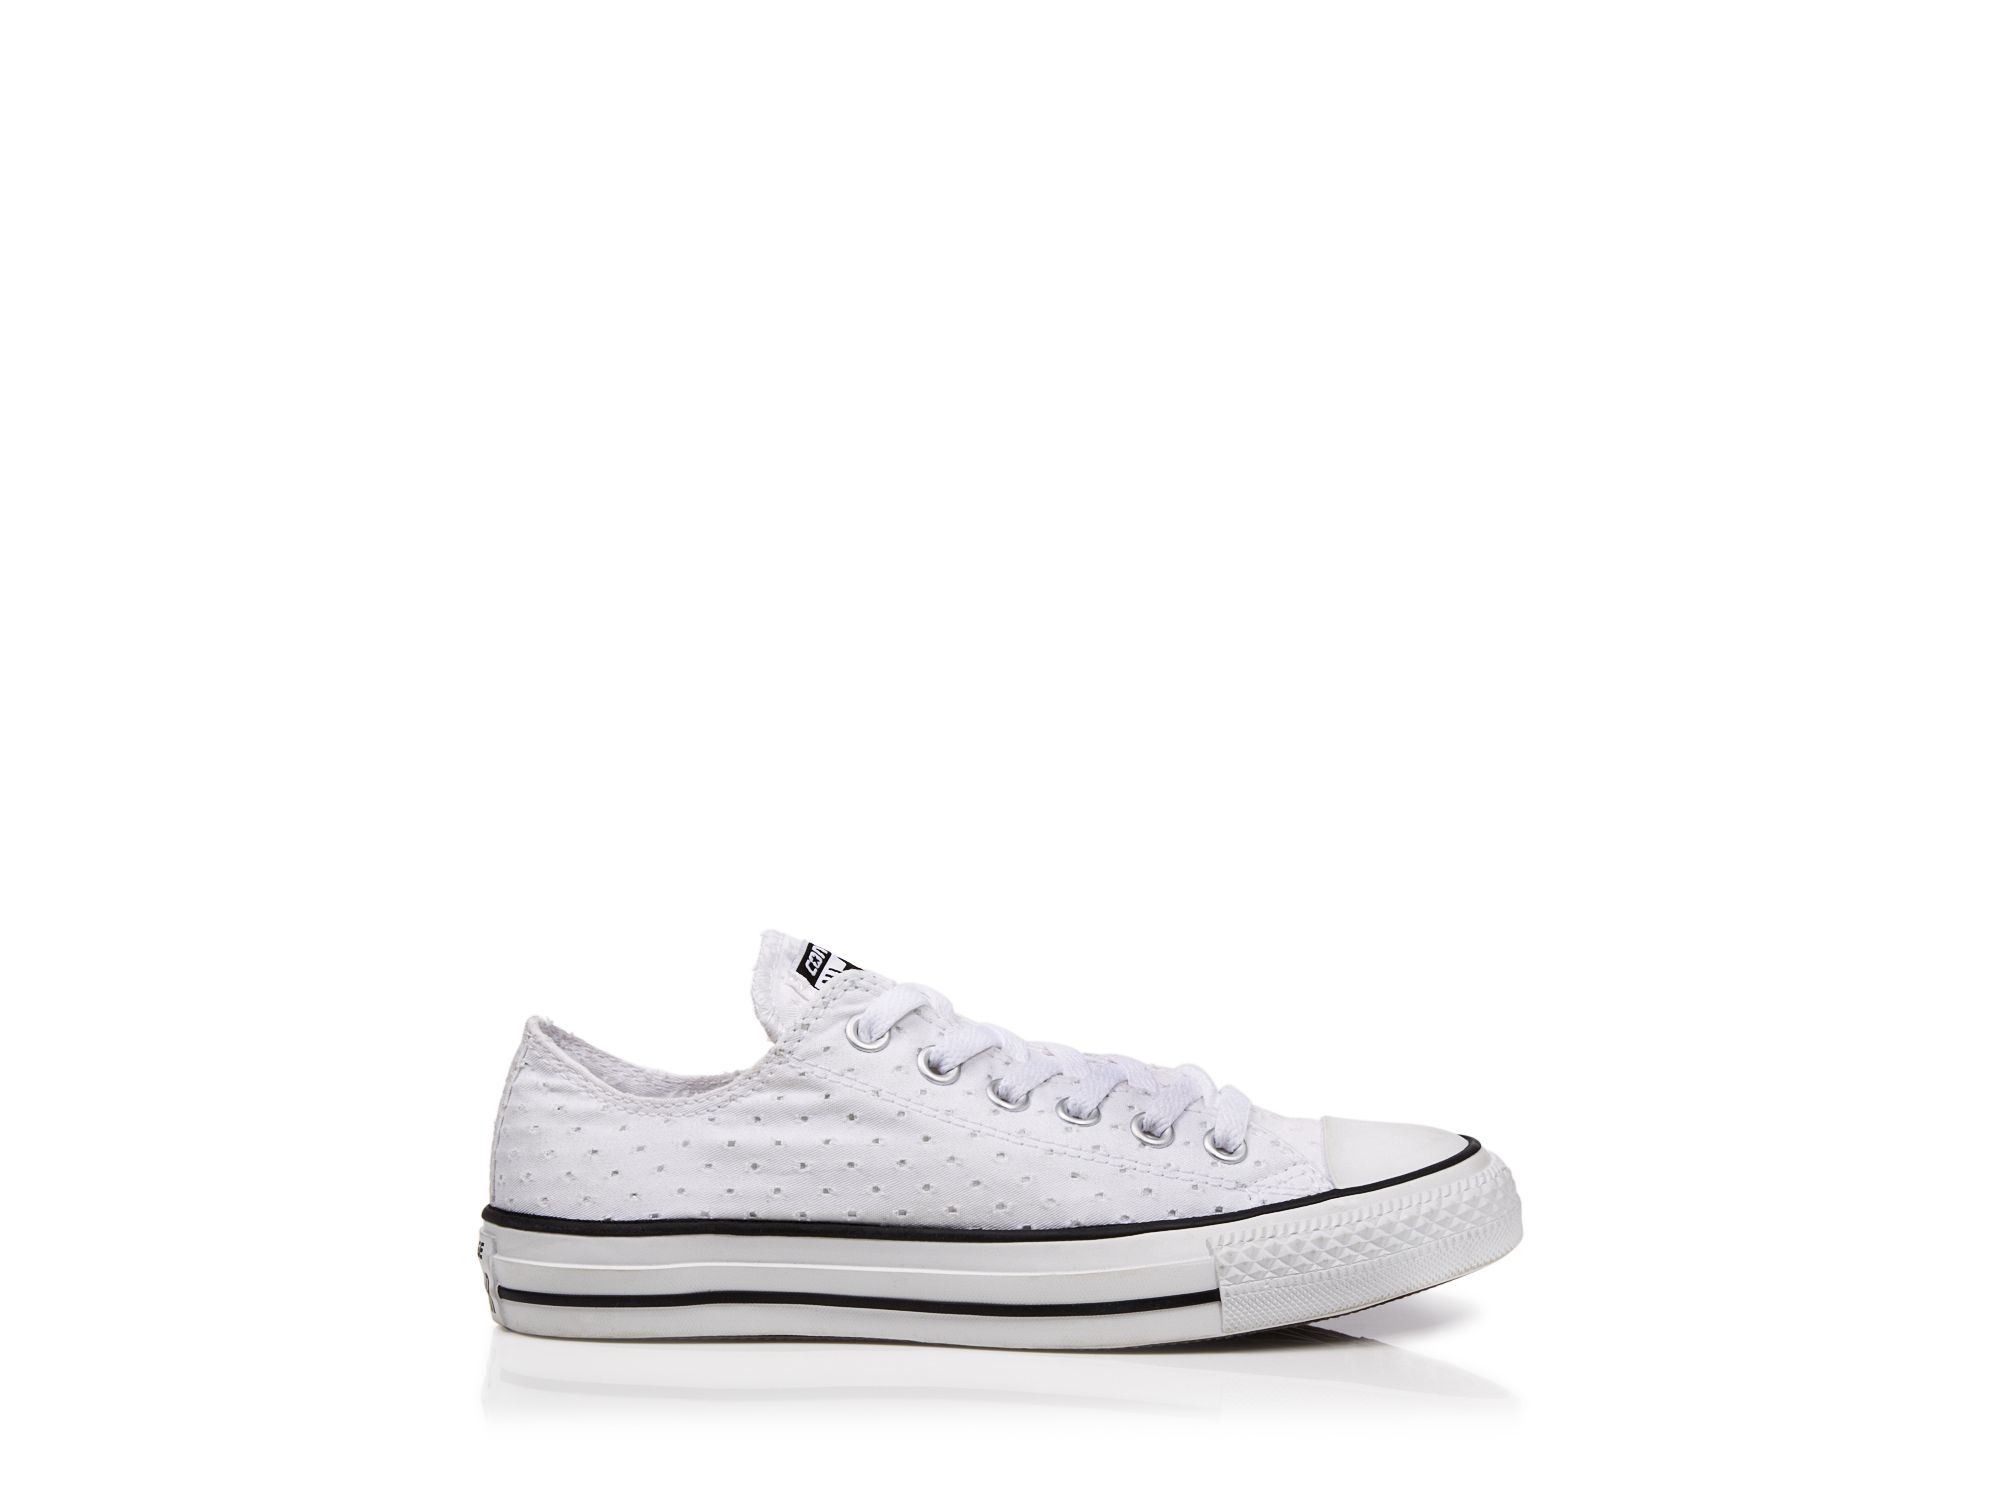 00196aee3dd0 Lyst - Converse Lace Up Sneakers - Eyelet Low Top in Blue